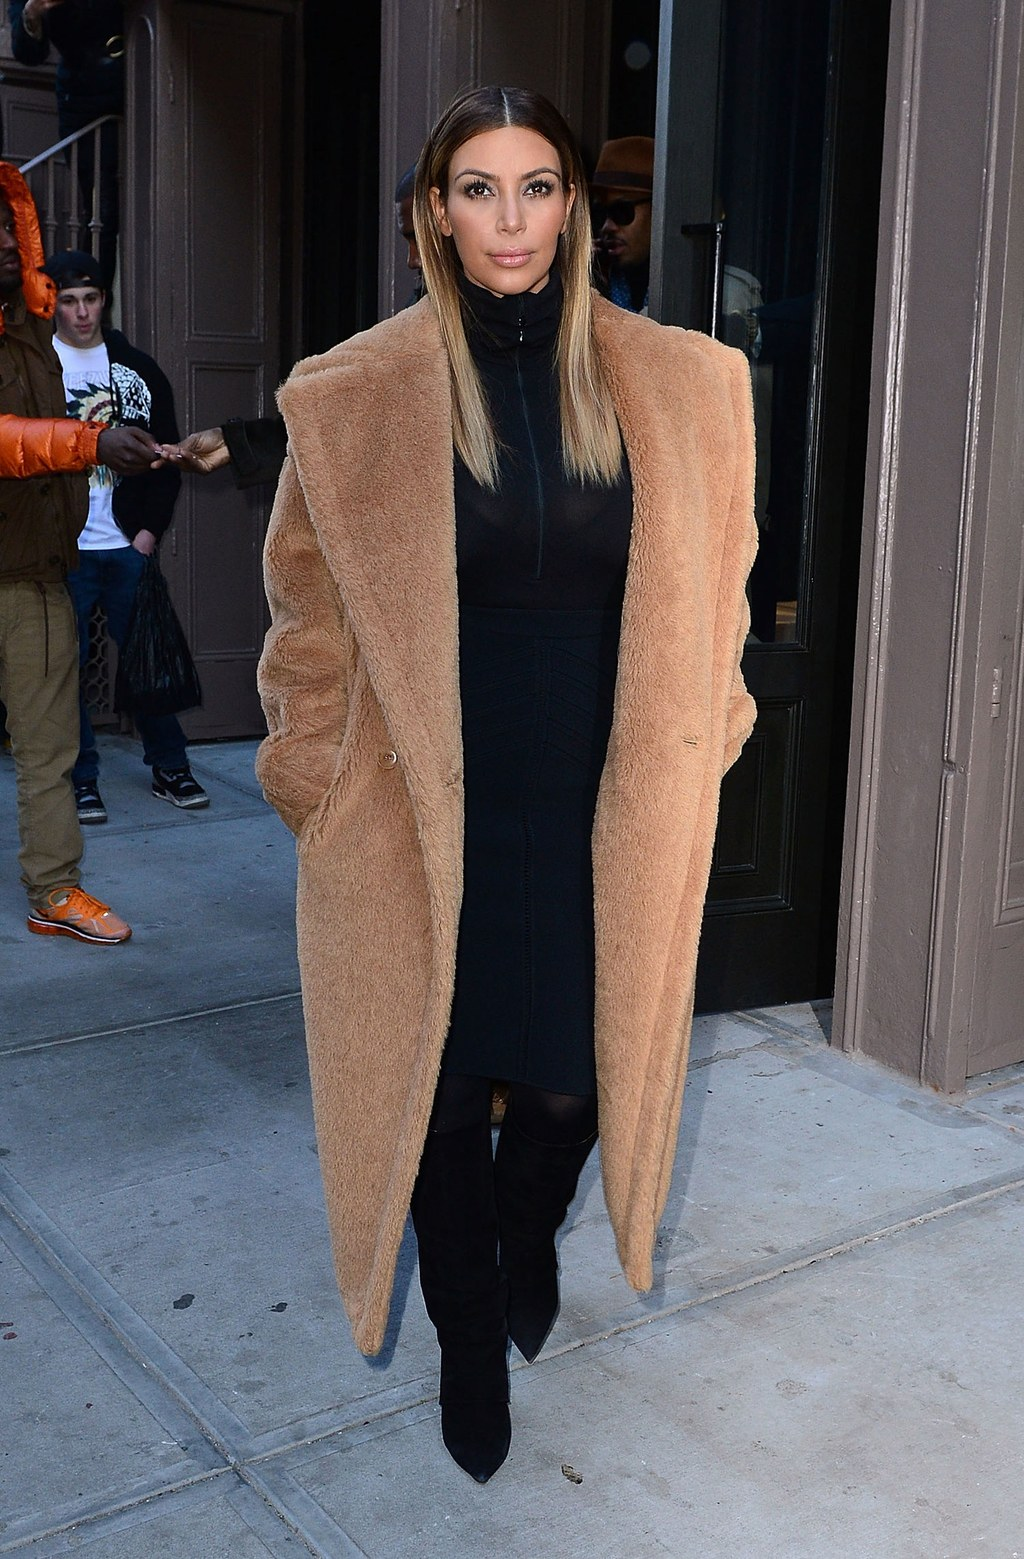 fashion-2013-11-kim-kardashian-max-mara-teddy-winter-coat-full-length-main.jpg